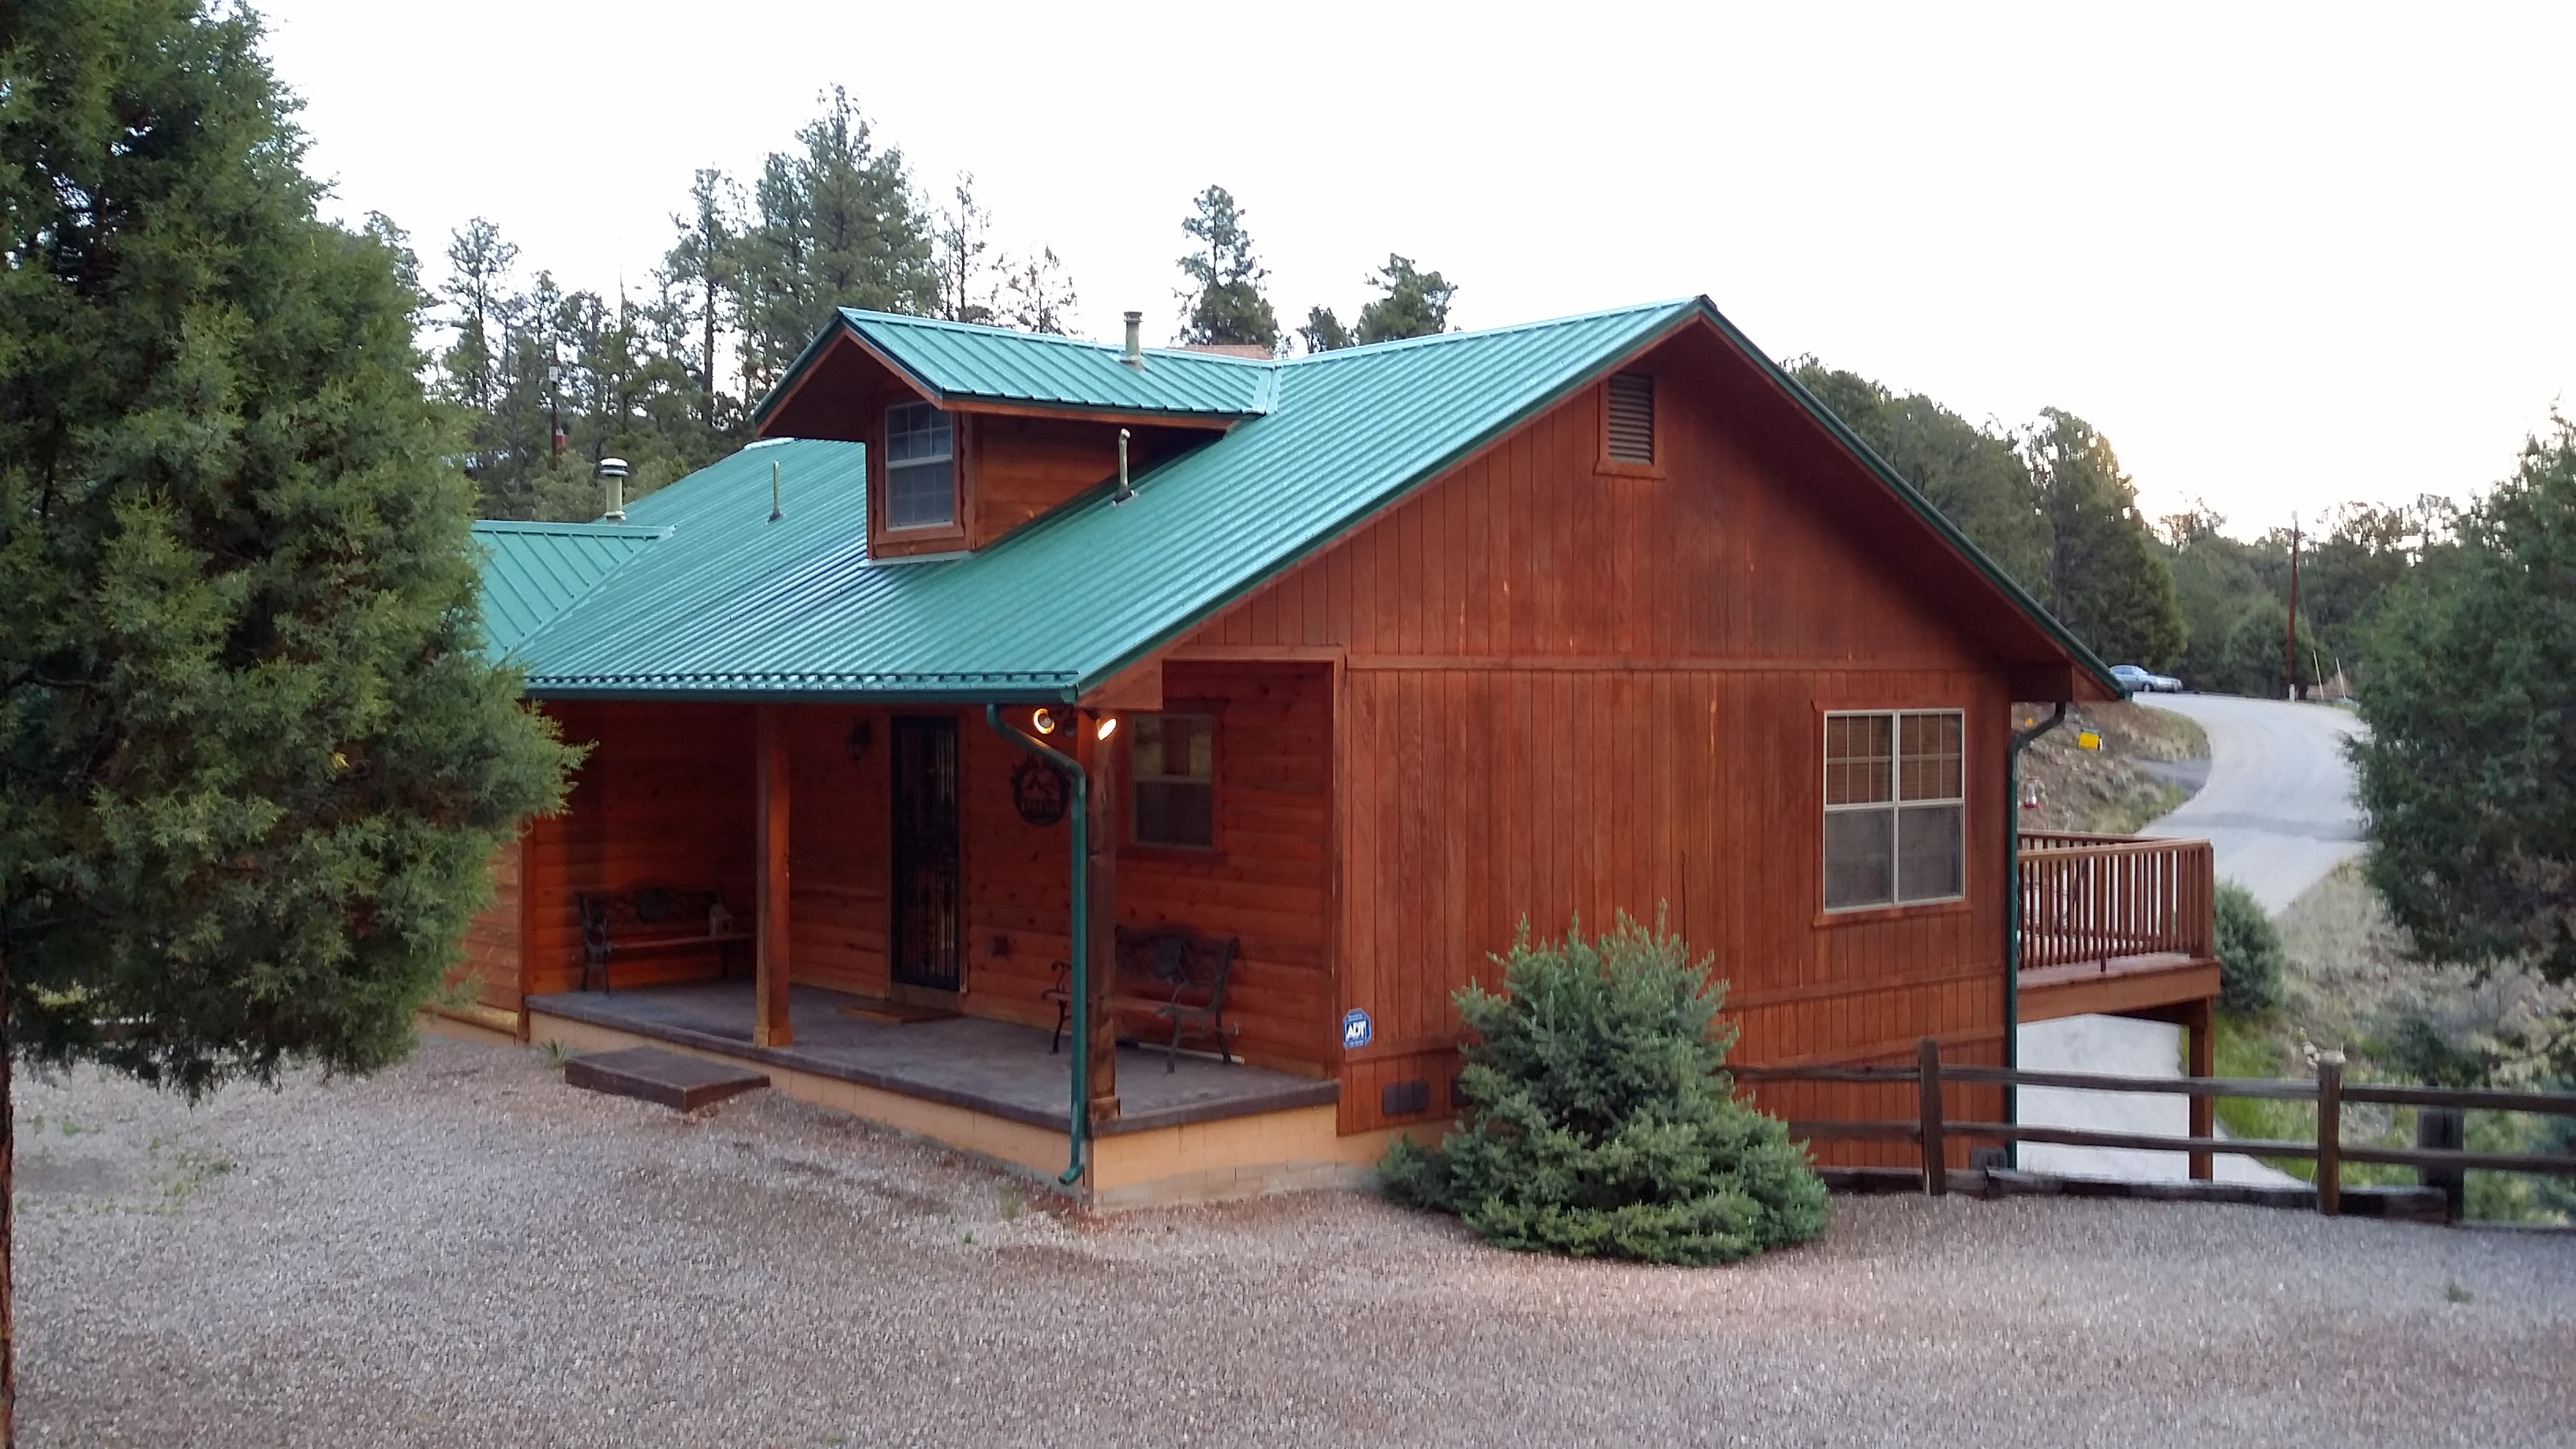 Ruidoso Cabin For Sale Ruidosohometours Com